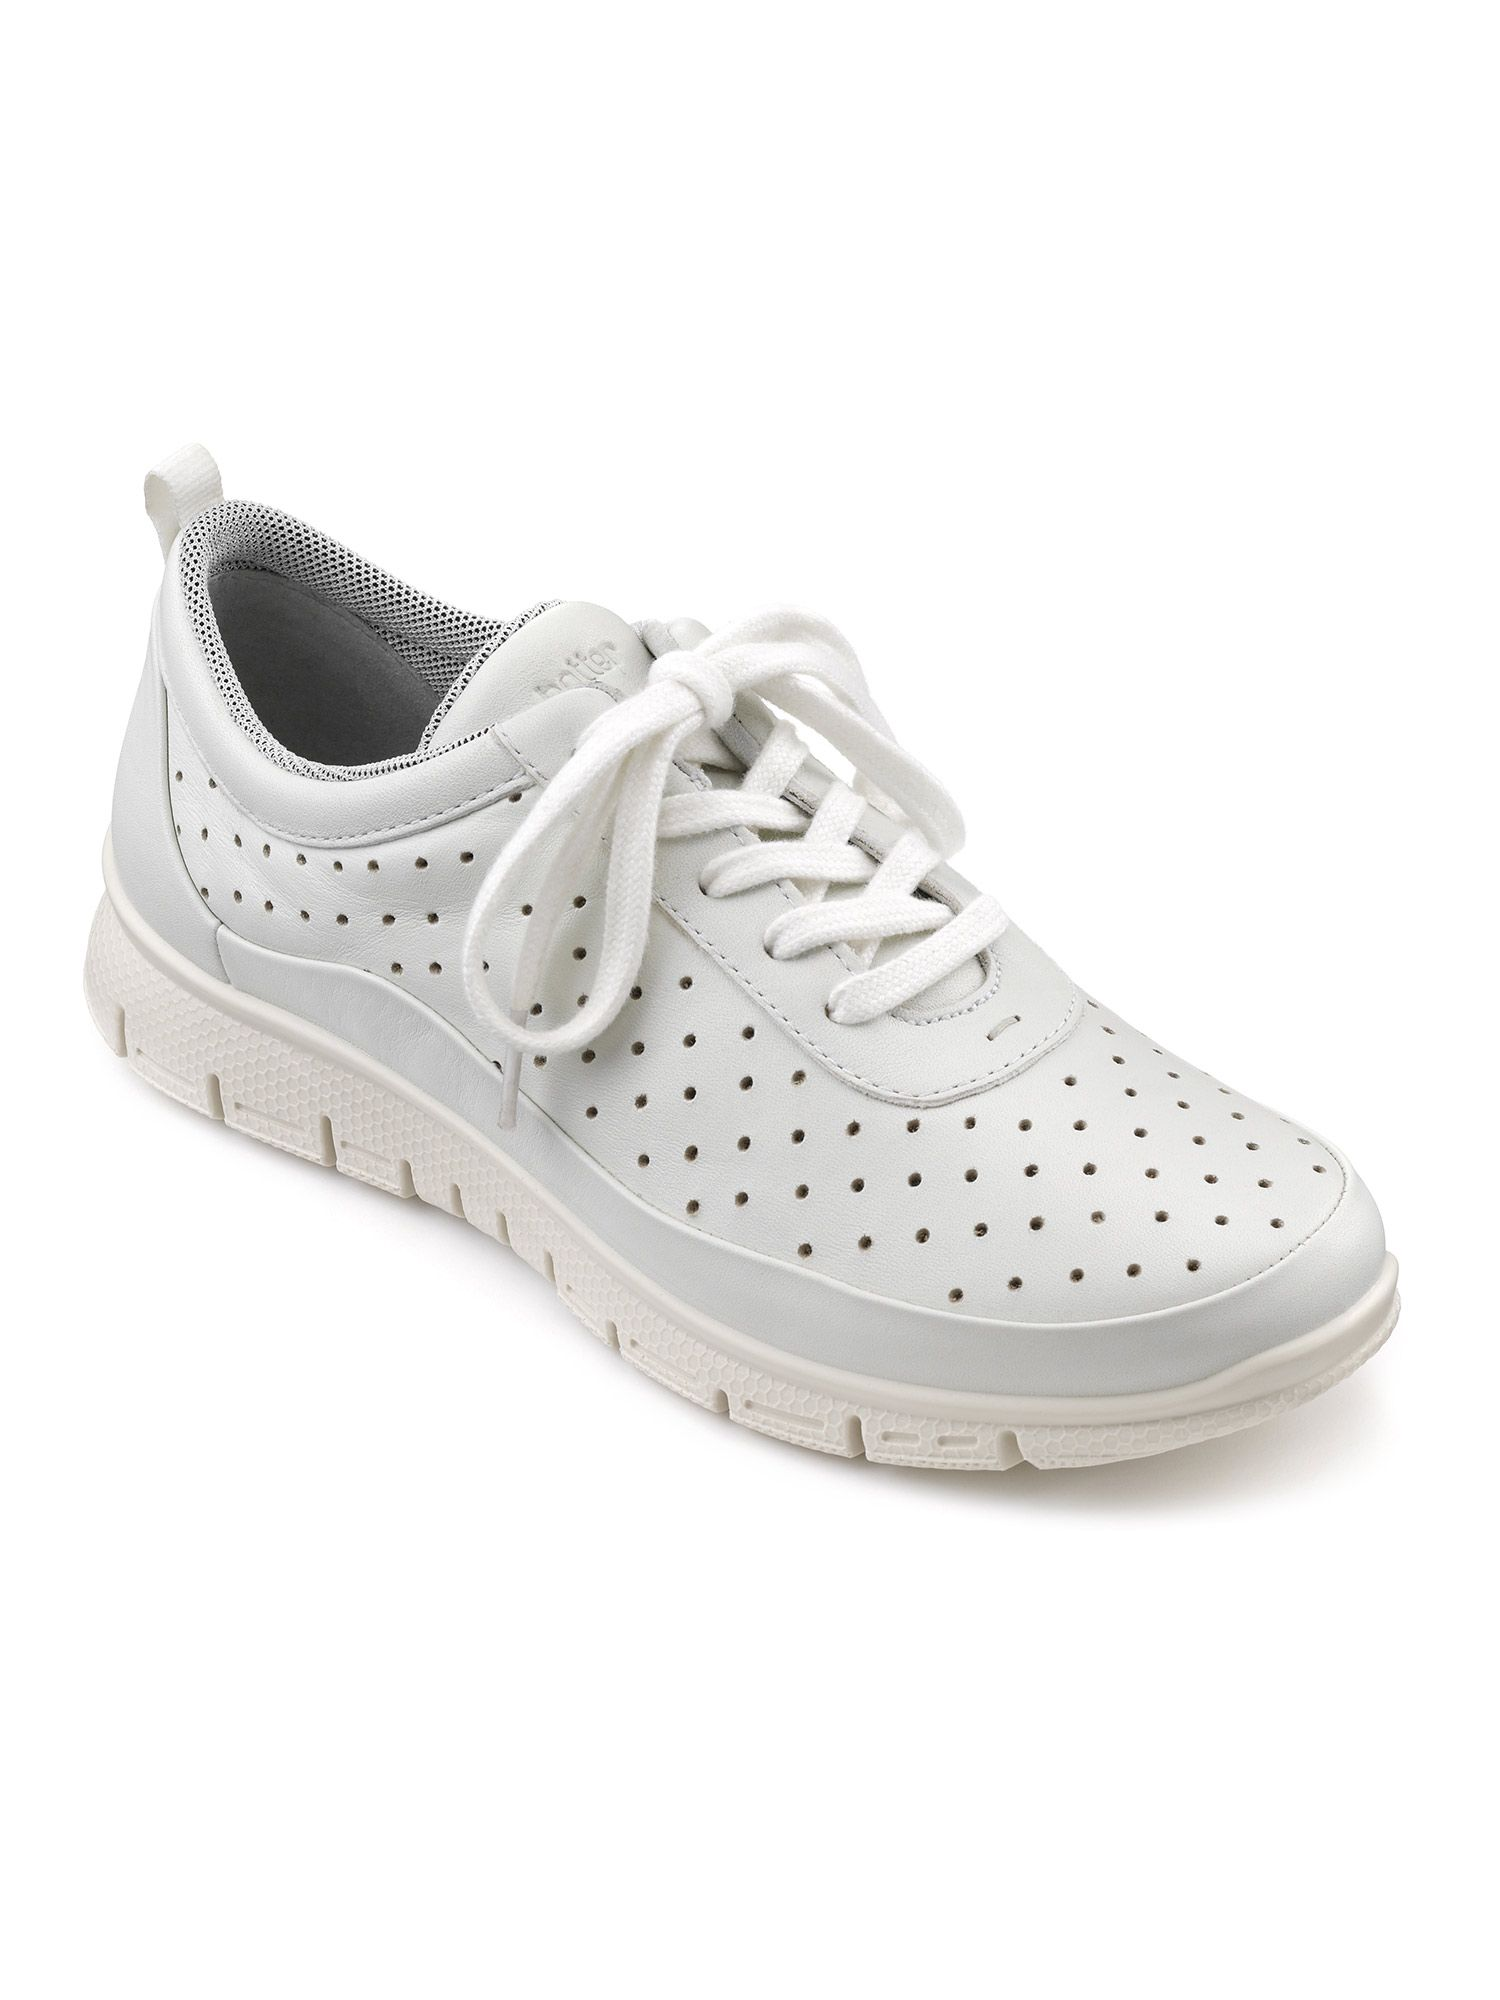 Hotter Gravity Ladies Active Shoe, White